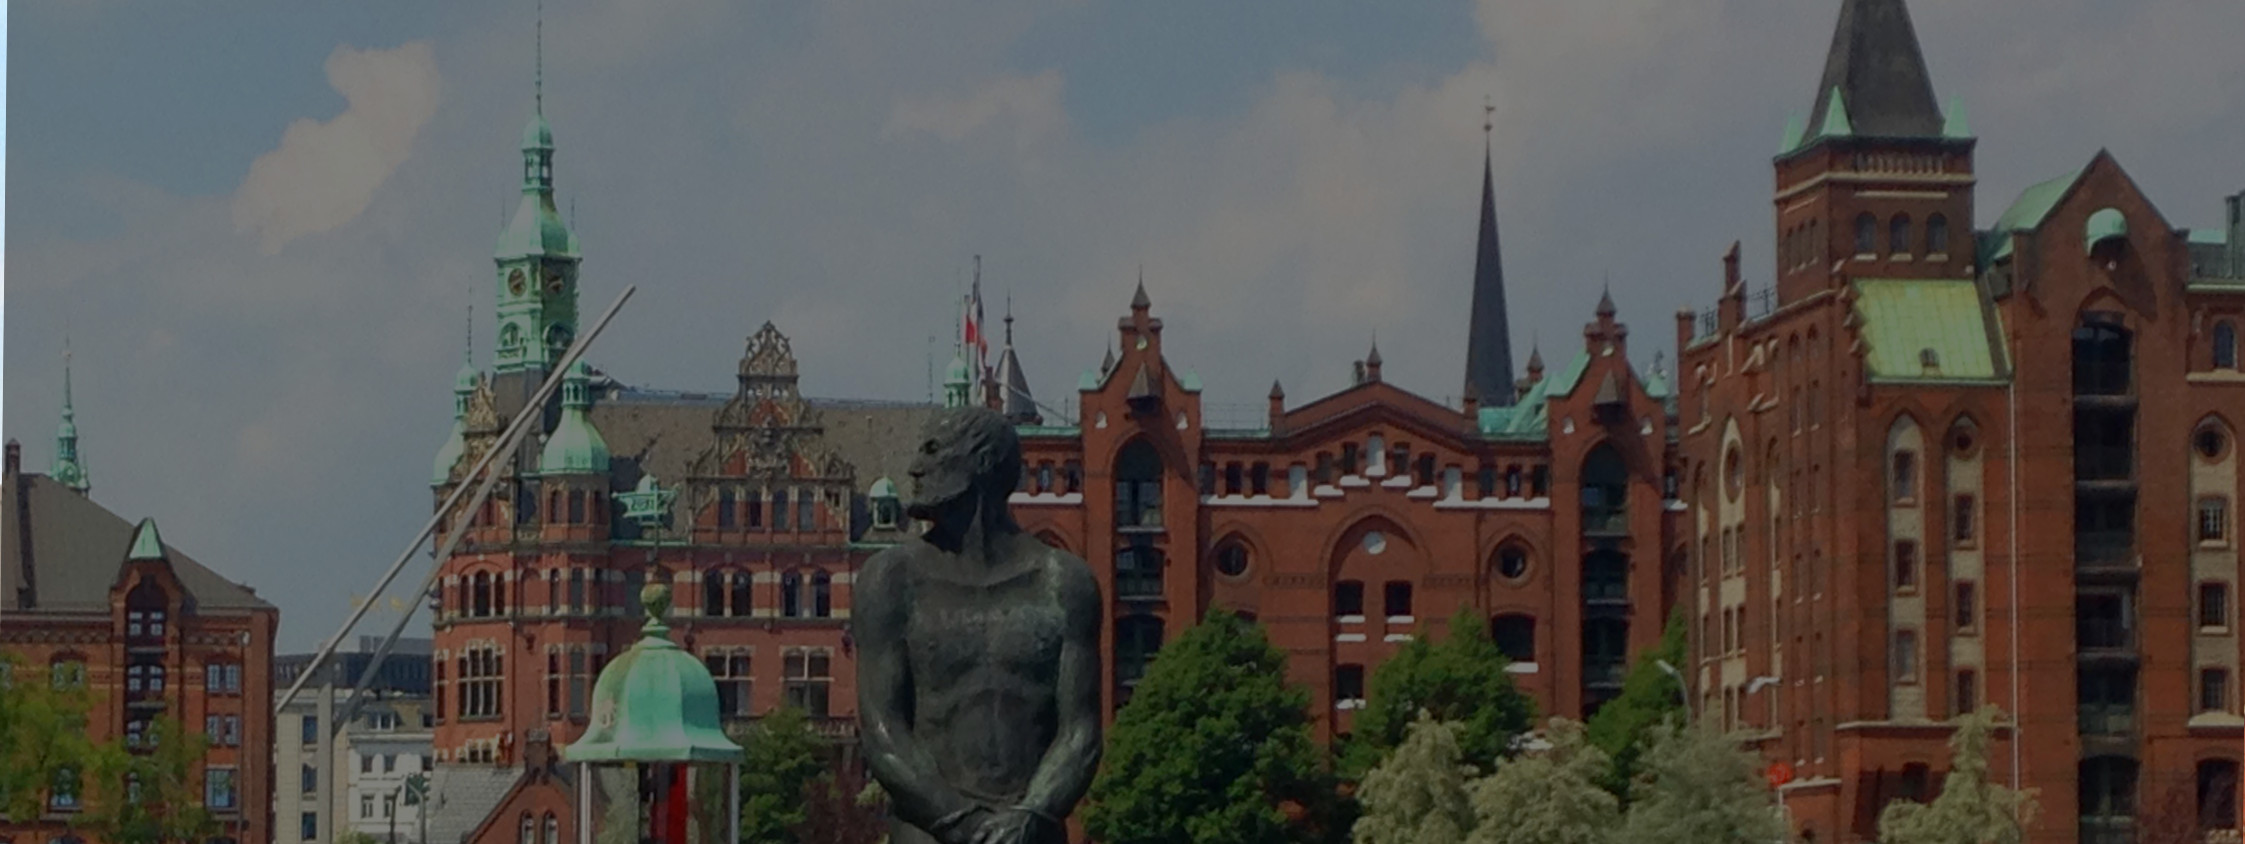 Upcoming Meeting: Innovations in Advertising - Hamburg, March 21-22, 2019